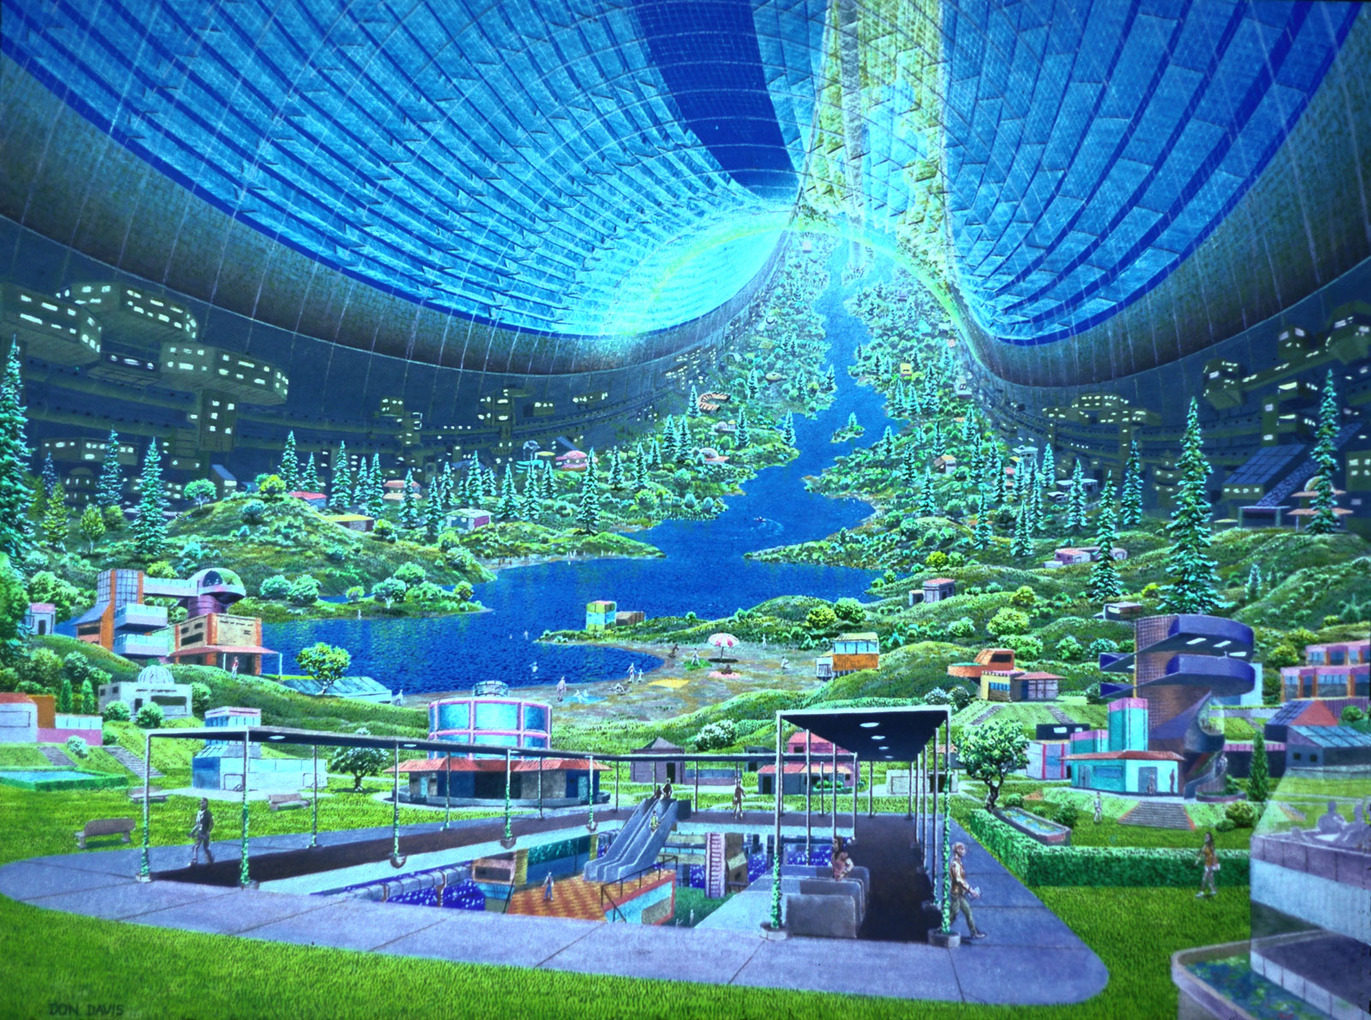 What kind of life form do you think would exist in another planet in the year 2100?